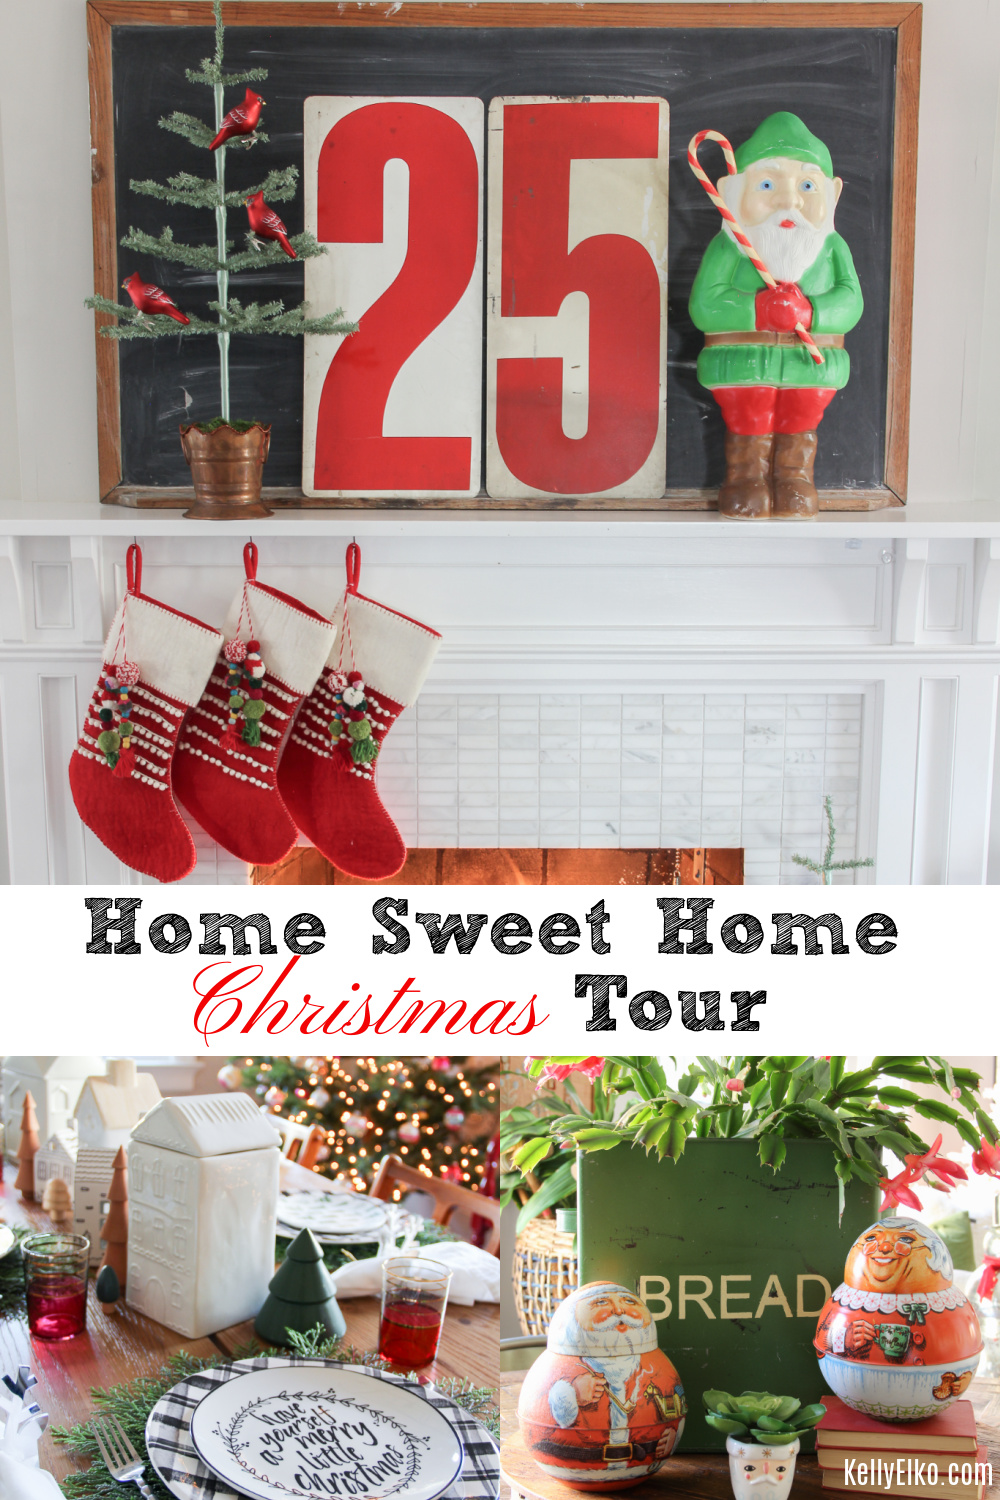 Home Sweet Home Christmas Home Tour - love this creative vintage and colorful tour kellyelko.com #christmas #christmasdecor #christmasdecorating #vintagechristmas #retrochristmas #christmashometour #christmashousetour #holidayhousewalk #farmhousechristmas #christmasmantel #christmastree